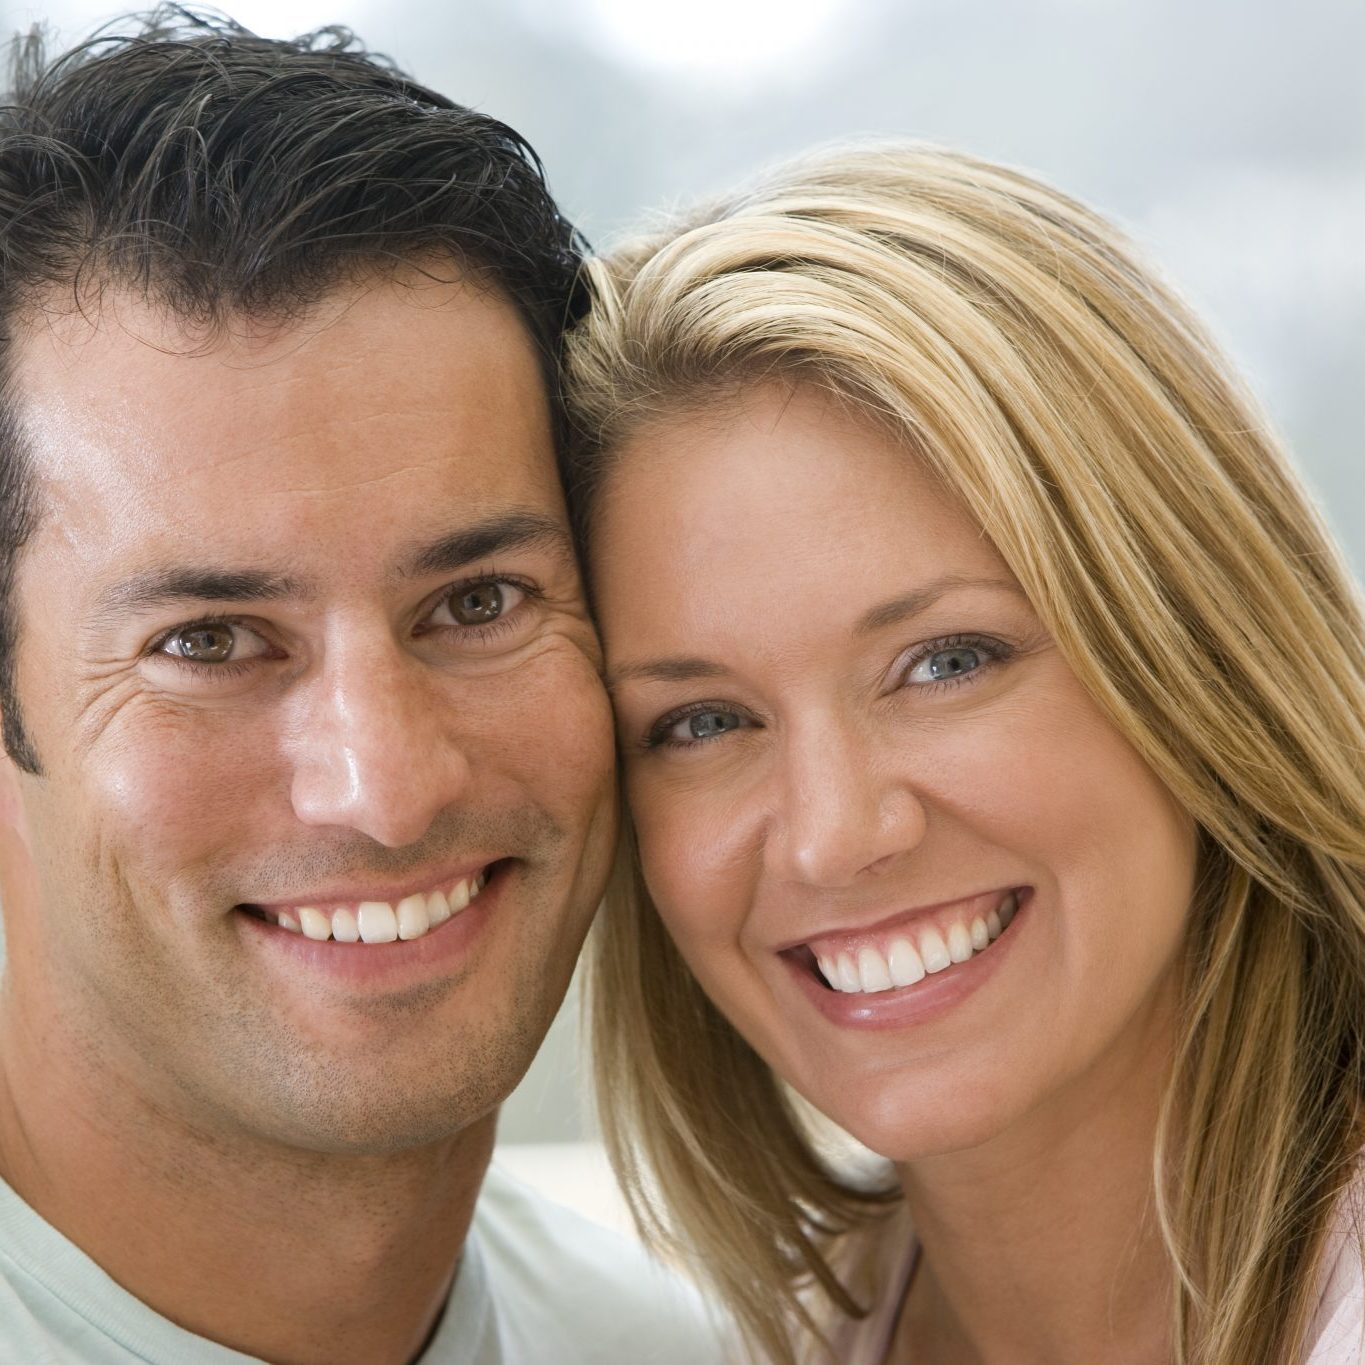 bigstock-Couples-Indoors-Smiling-4135977